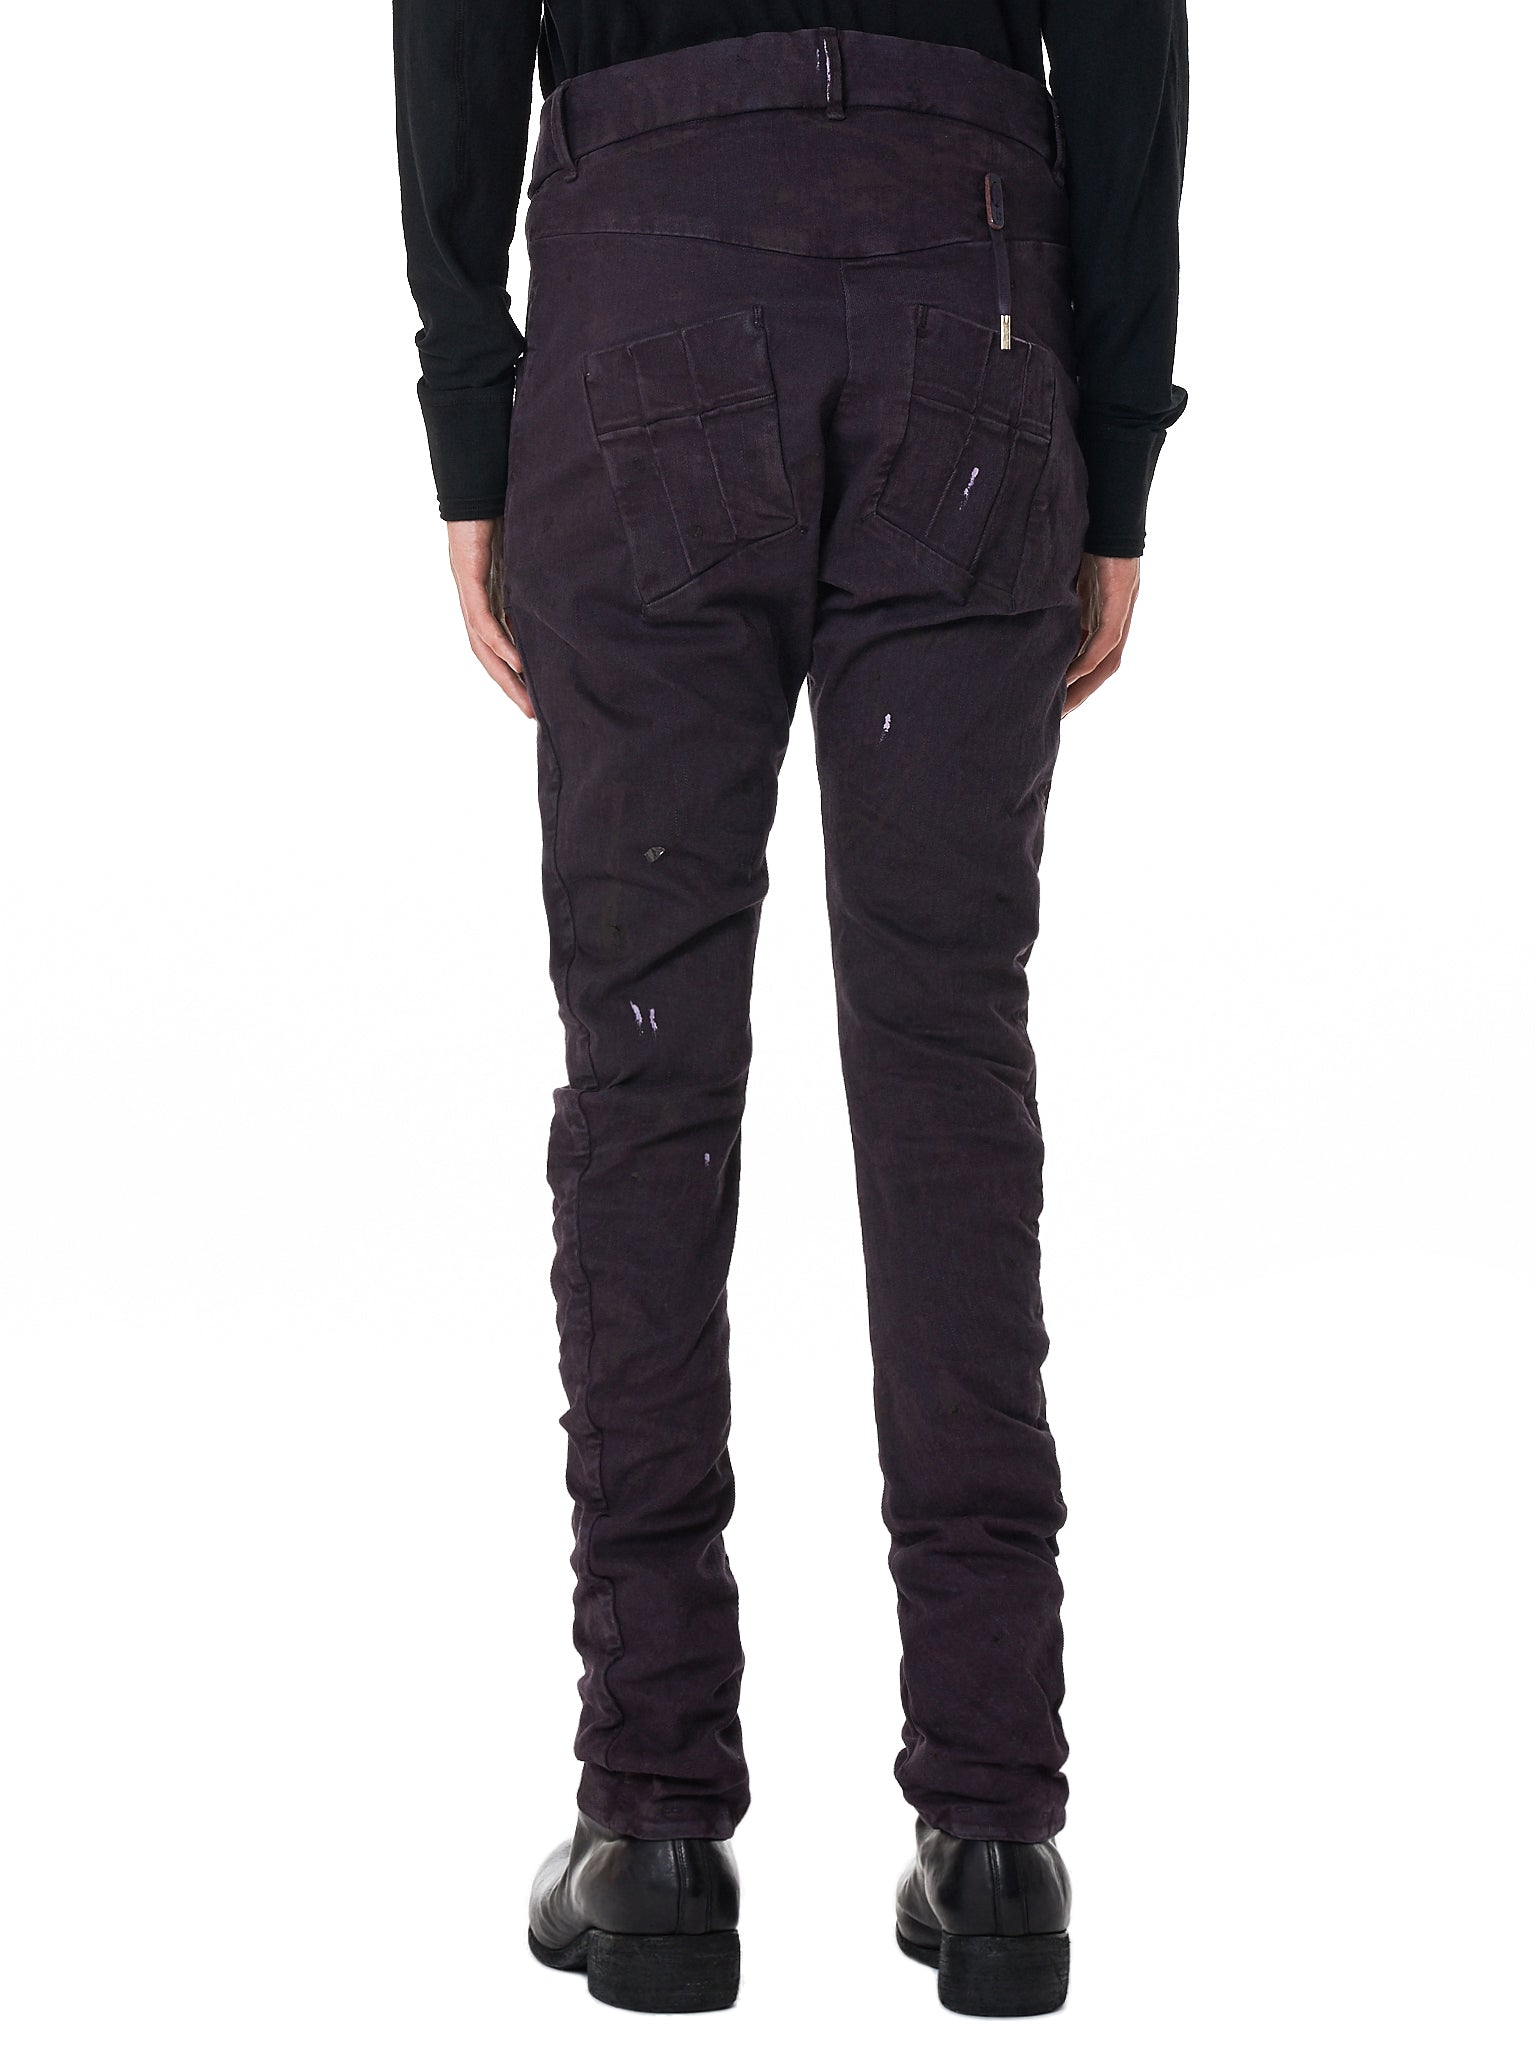 Boris Bidjan Saberi 'P13' Purple Denim - Hlorenzo Back